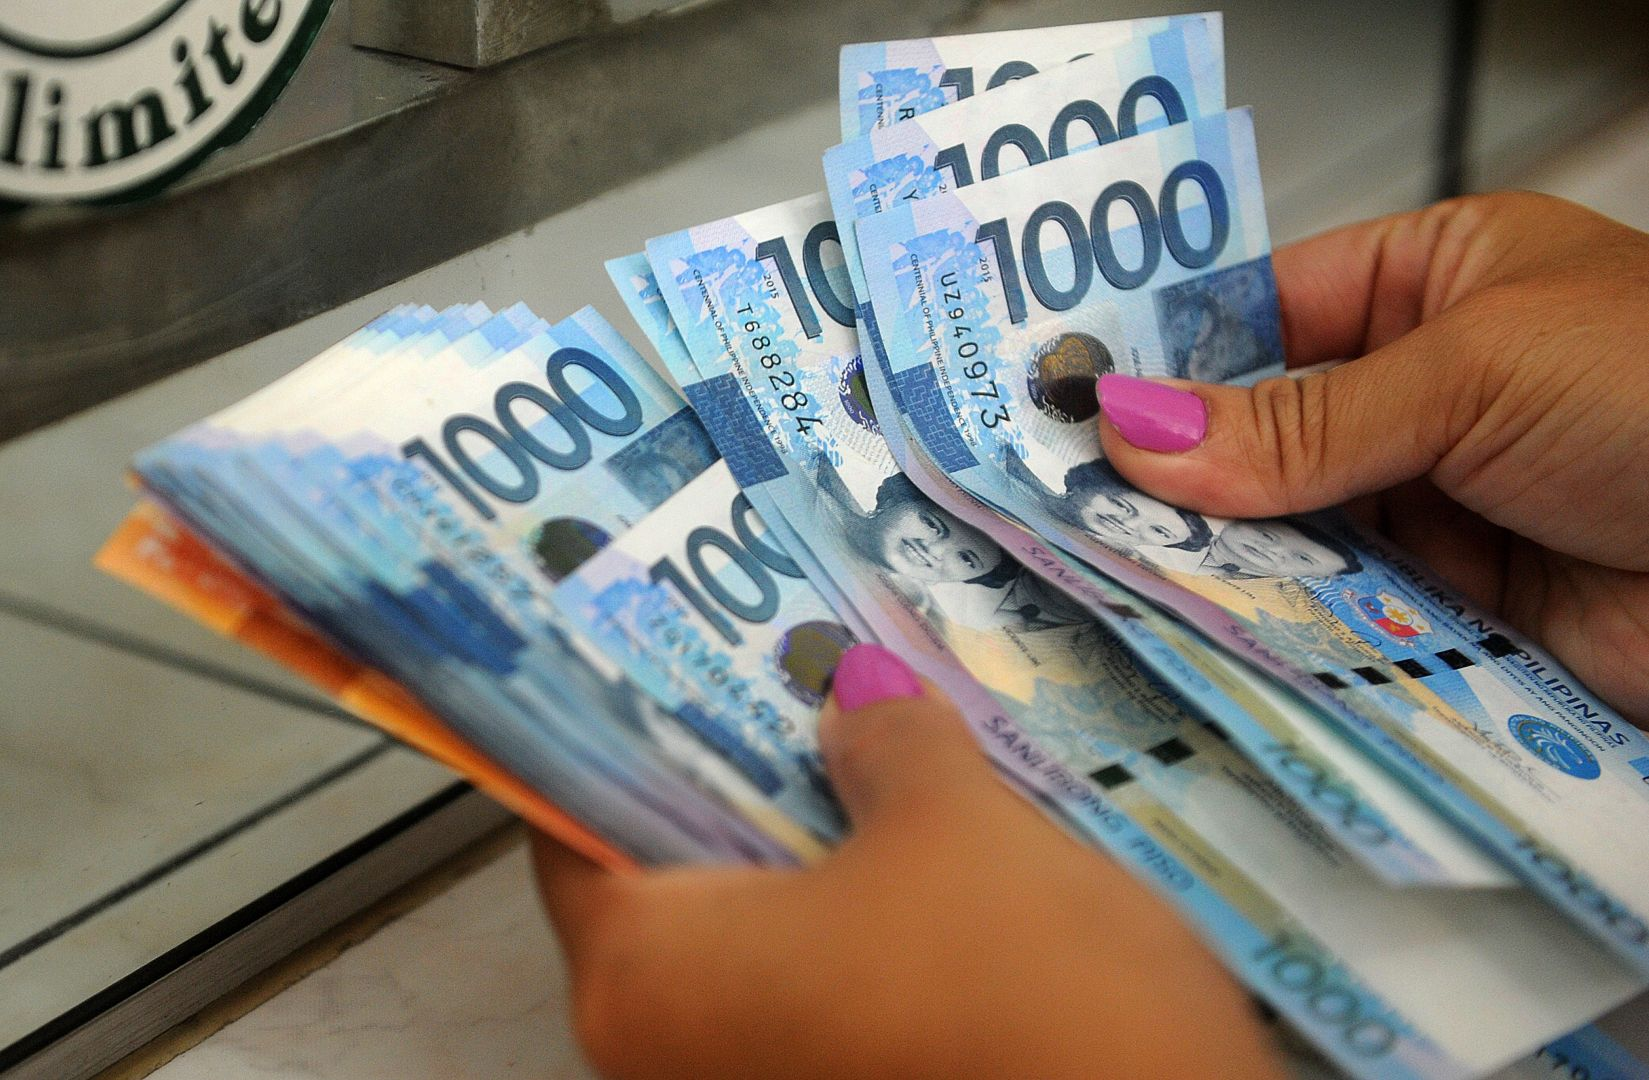 SSS Members to get unemployment benefits of up to Php 10,000/month